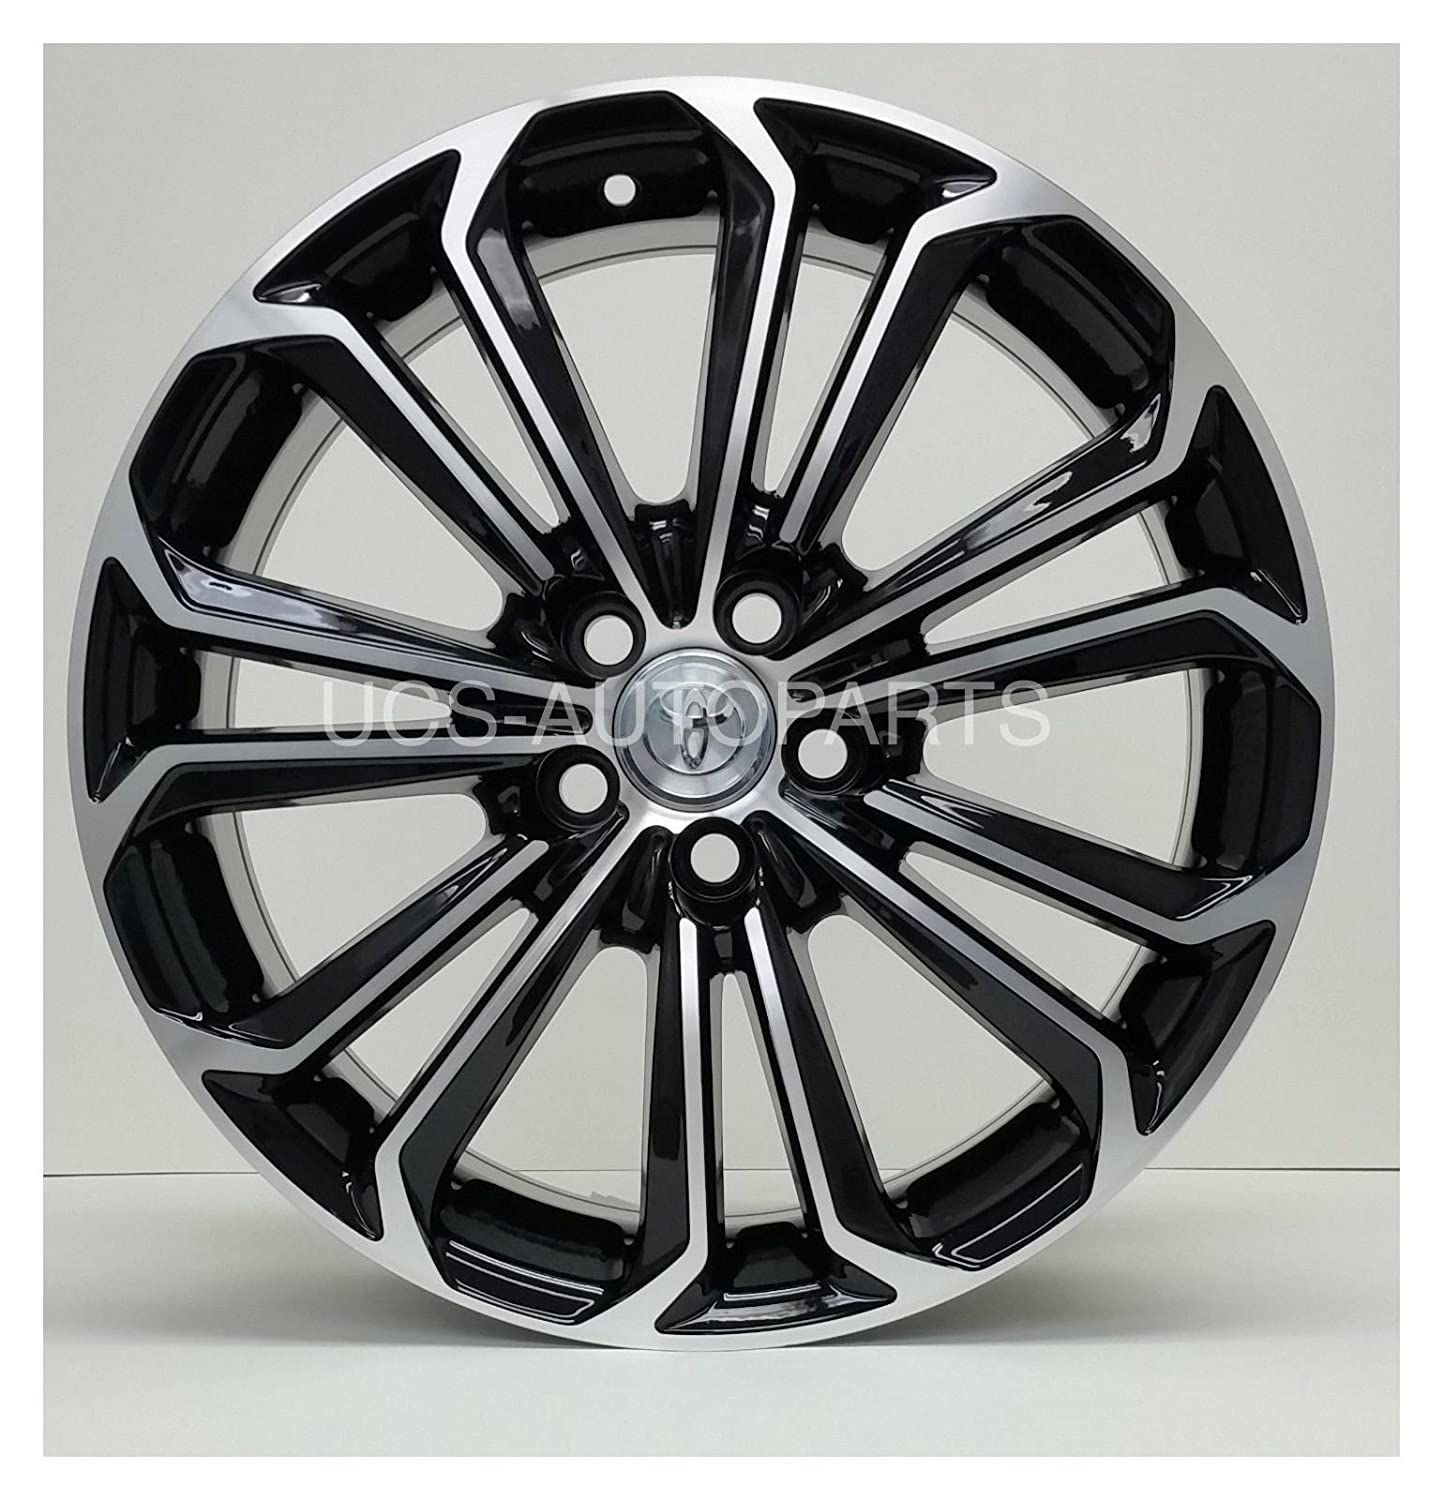 wheels of lexus fits camry silver rims for set p toyota